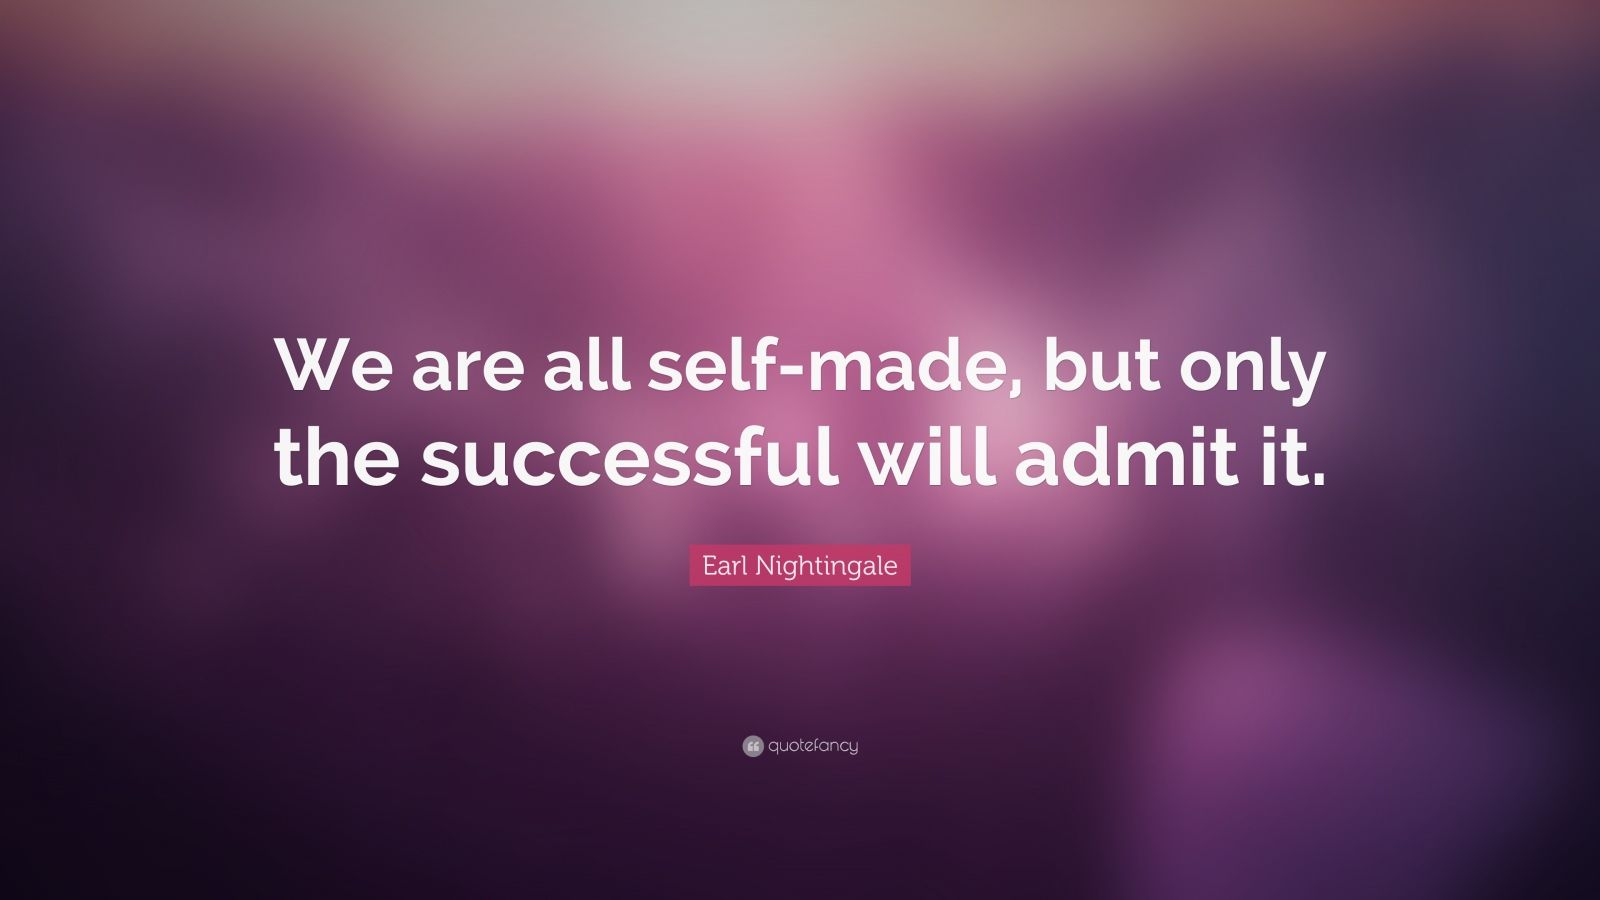 """Earl Nightingale Quote: """"We are all self-made, but only the successful will admit it."""""""